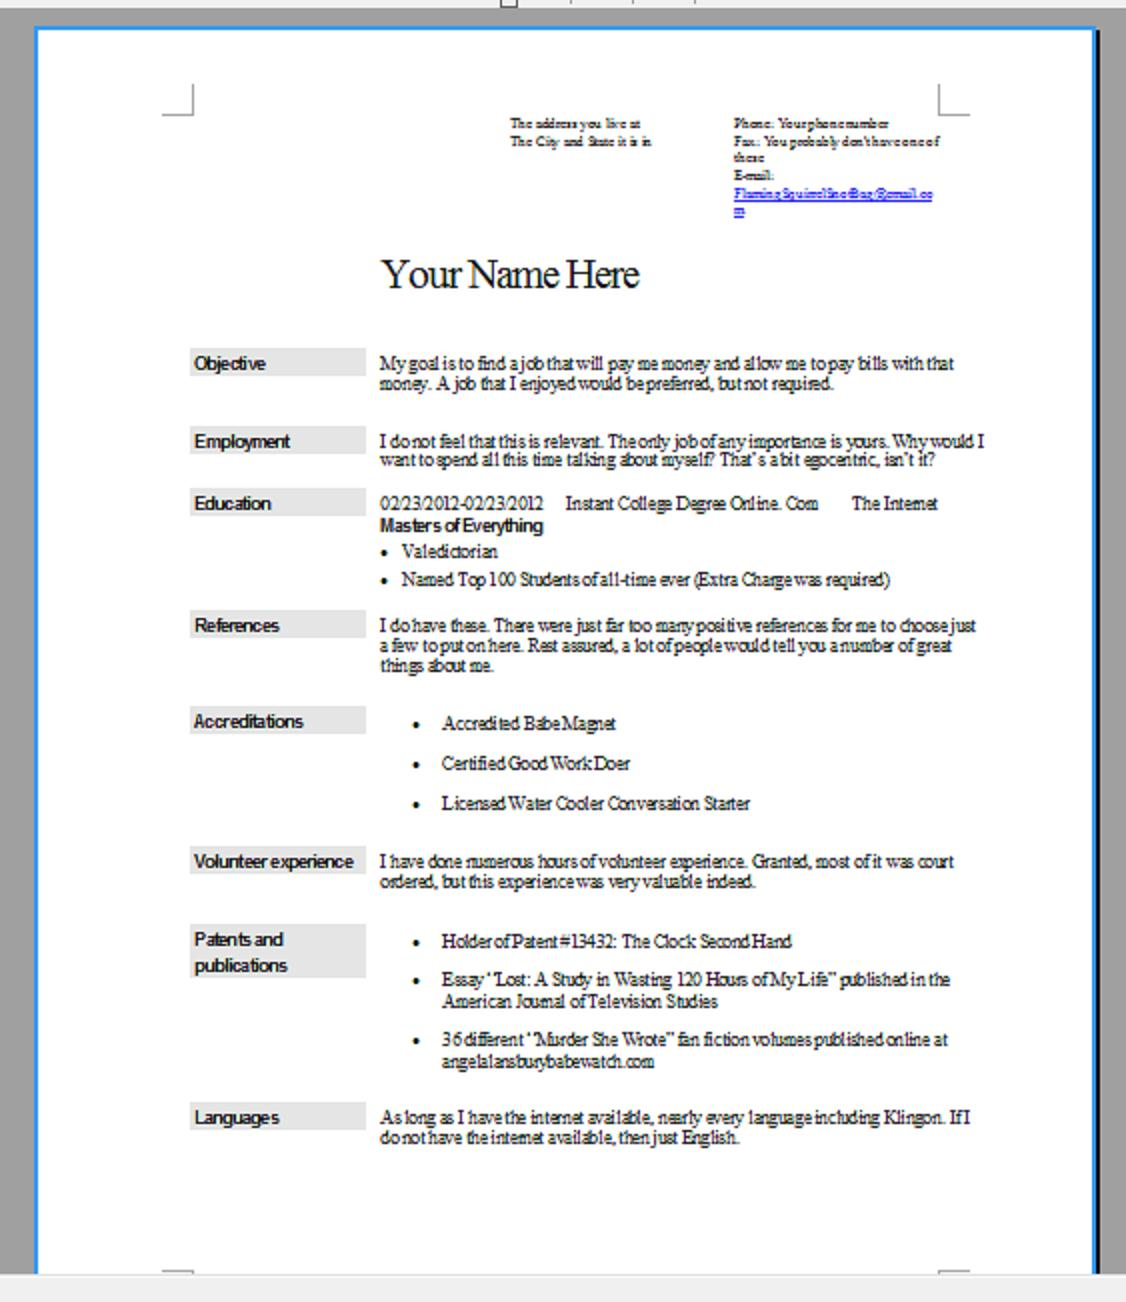 to do professional resume get ultimateresume budget analyst federal government sample Resume Where Do I Get A Resume